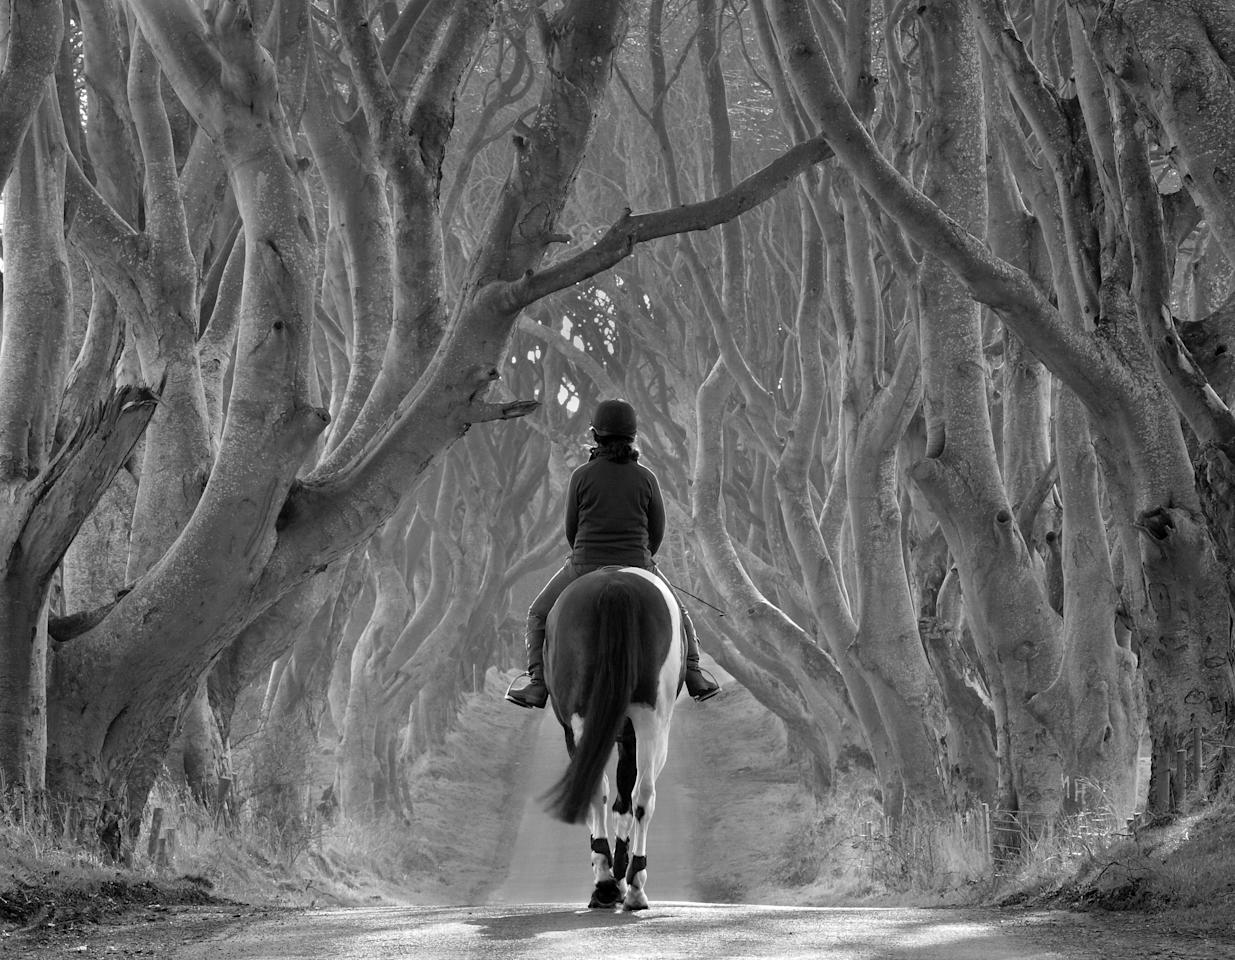 'Riding Out, the Dark Hedges', County Antrim, Northern Ireland: Bob McCallion's image of Melanie riding her horse Rocky, under some 300-year-old birch trees was commended in the 'Living View' category. (Bob McCallion, Landscape Photographer of the Year)